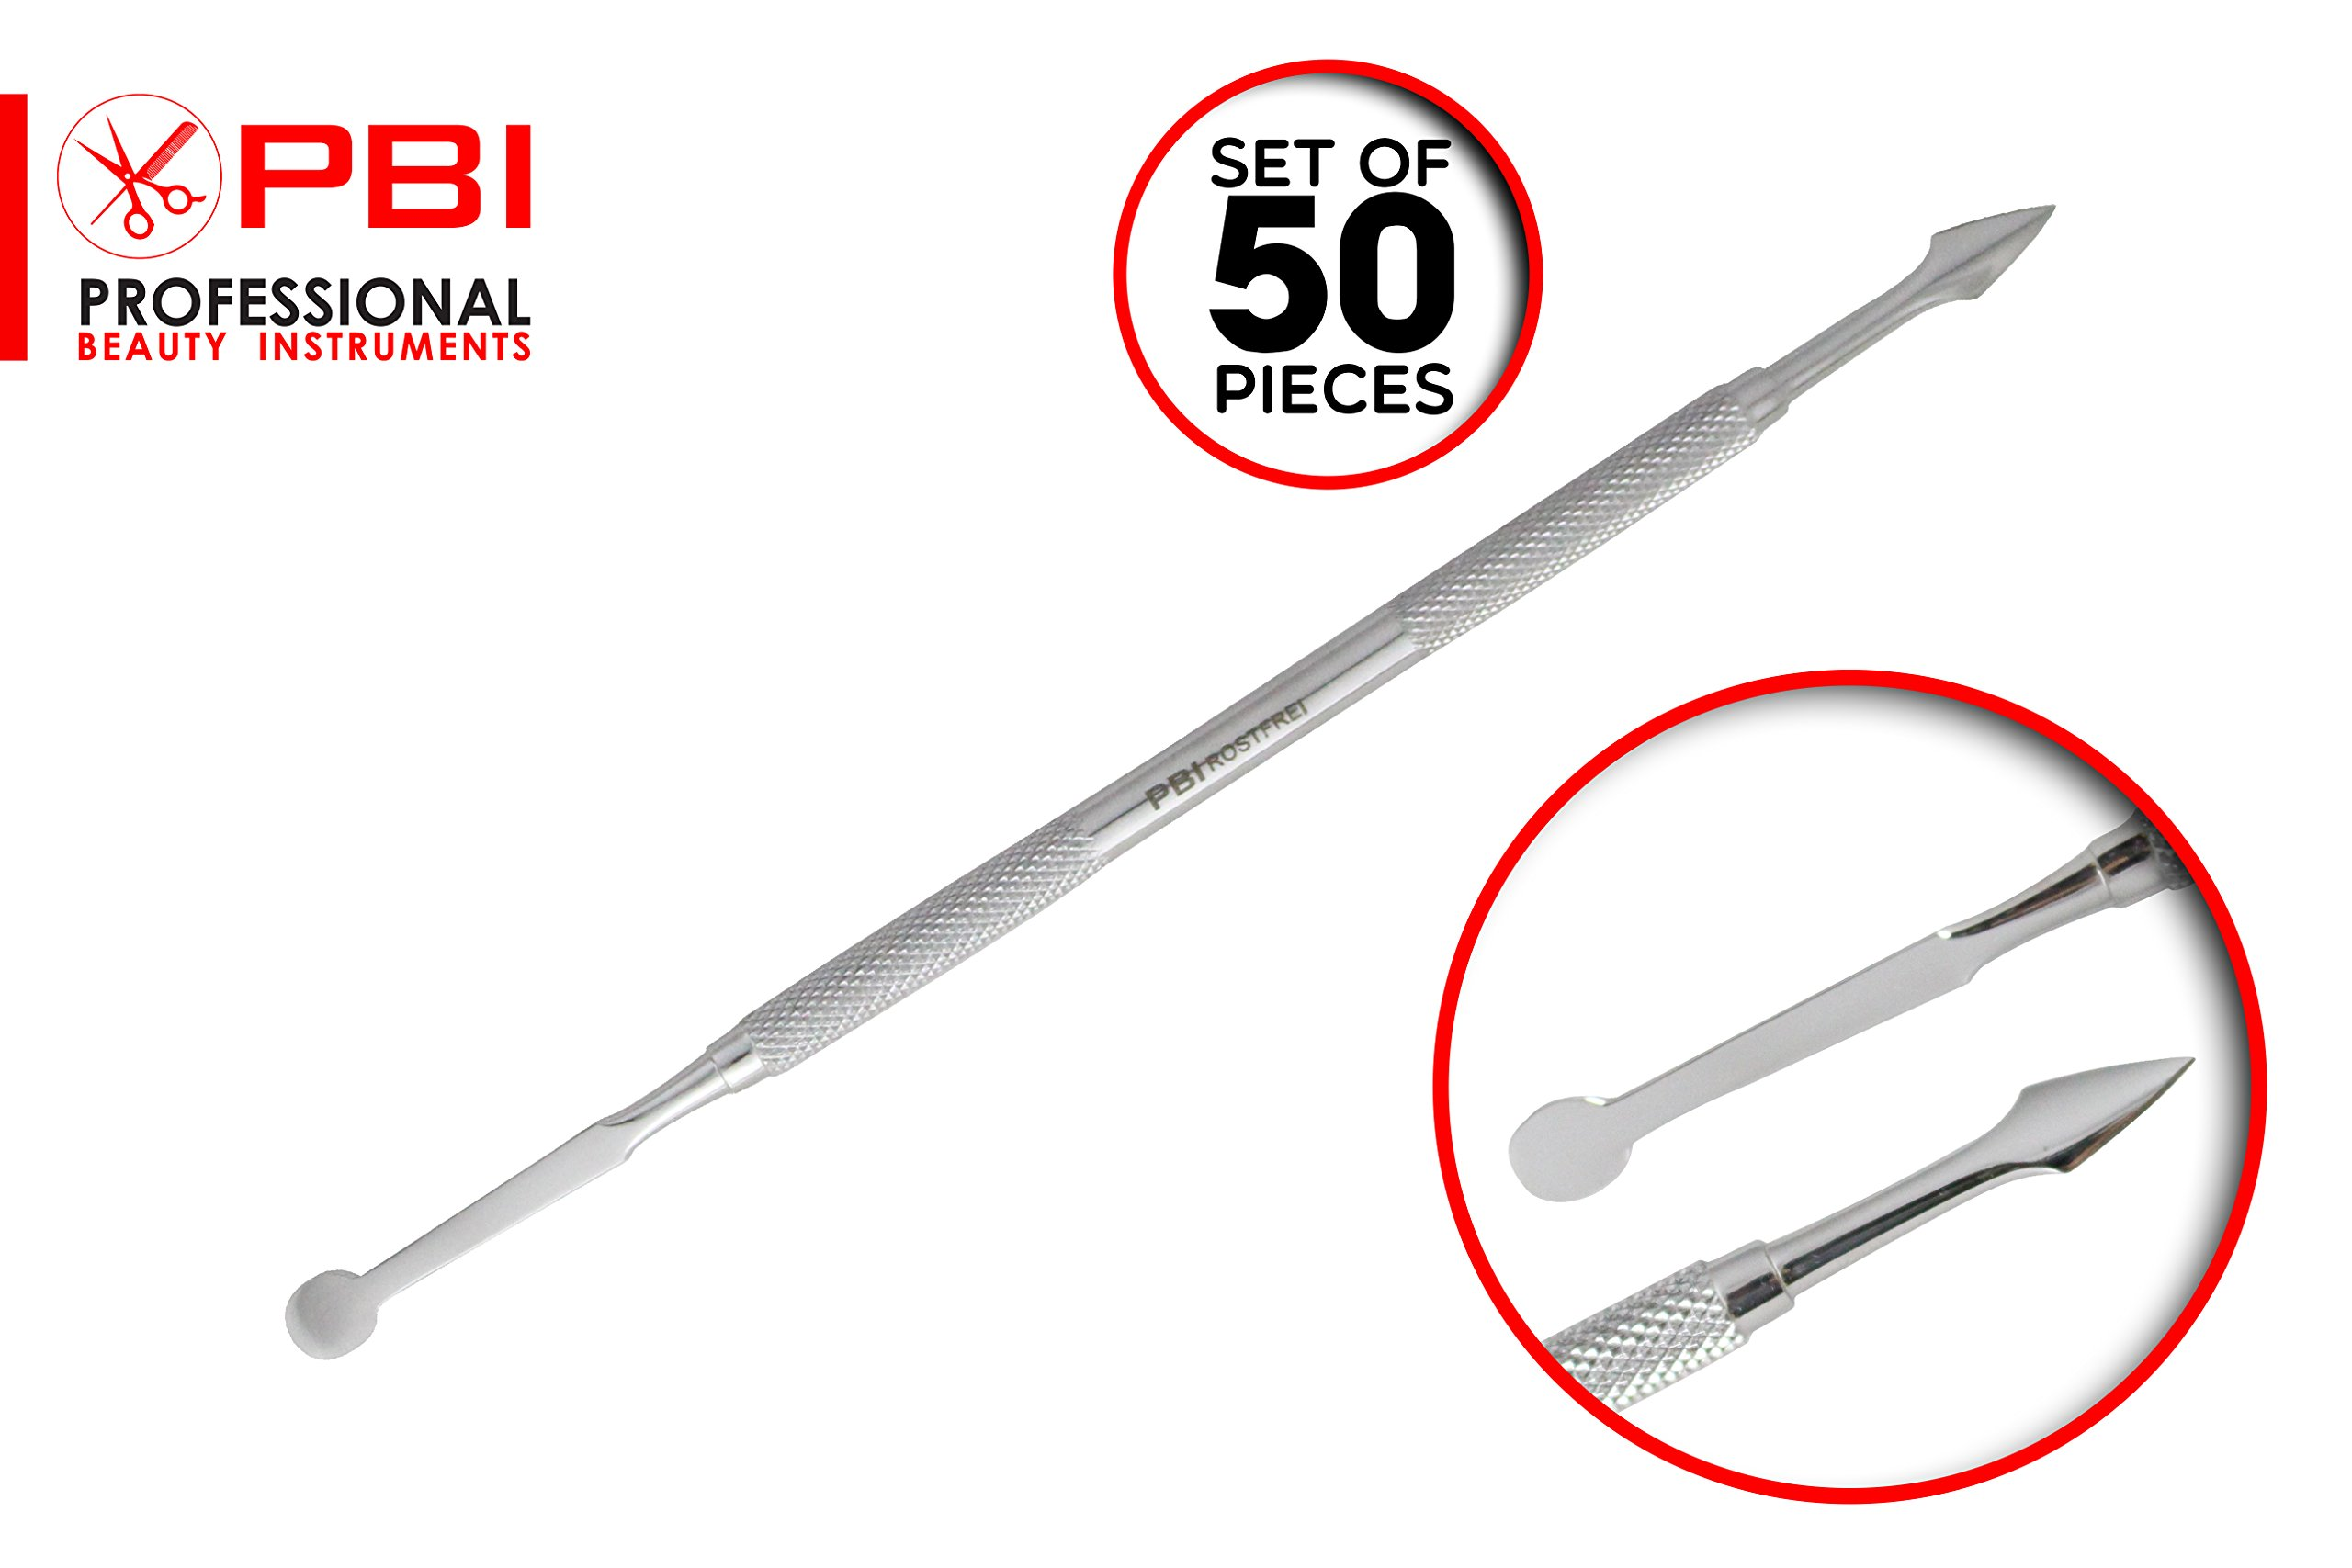 cuticle pusher - nail cleaner - manicure pedicure cuticle remover - double function cuticle pusher - 6.9 inch - 50 pieces set - Stainless steel from PBI